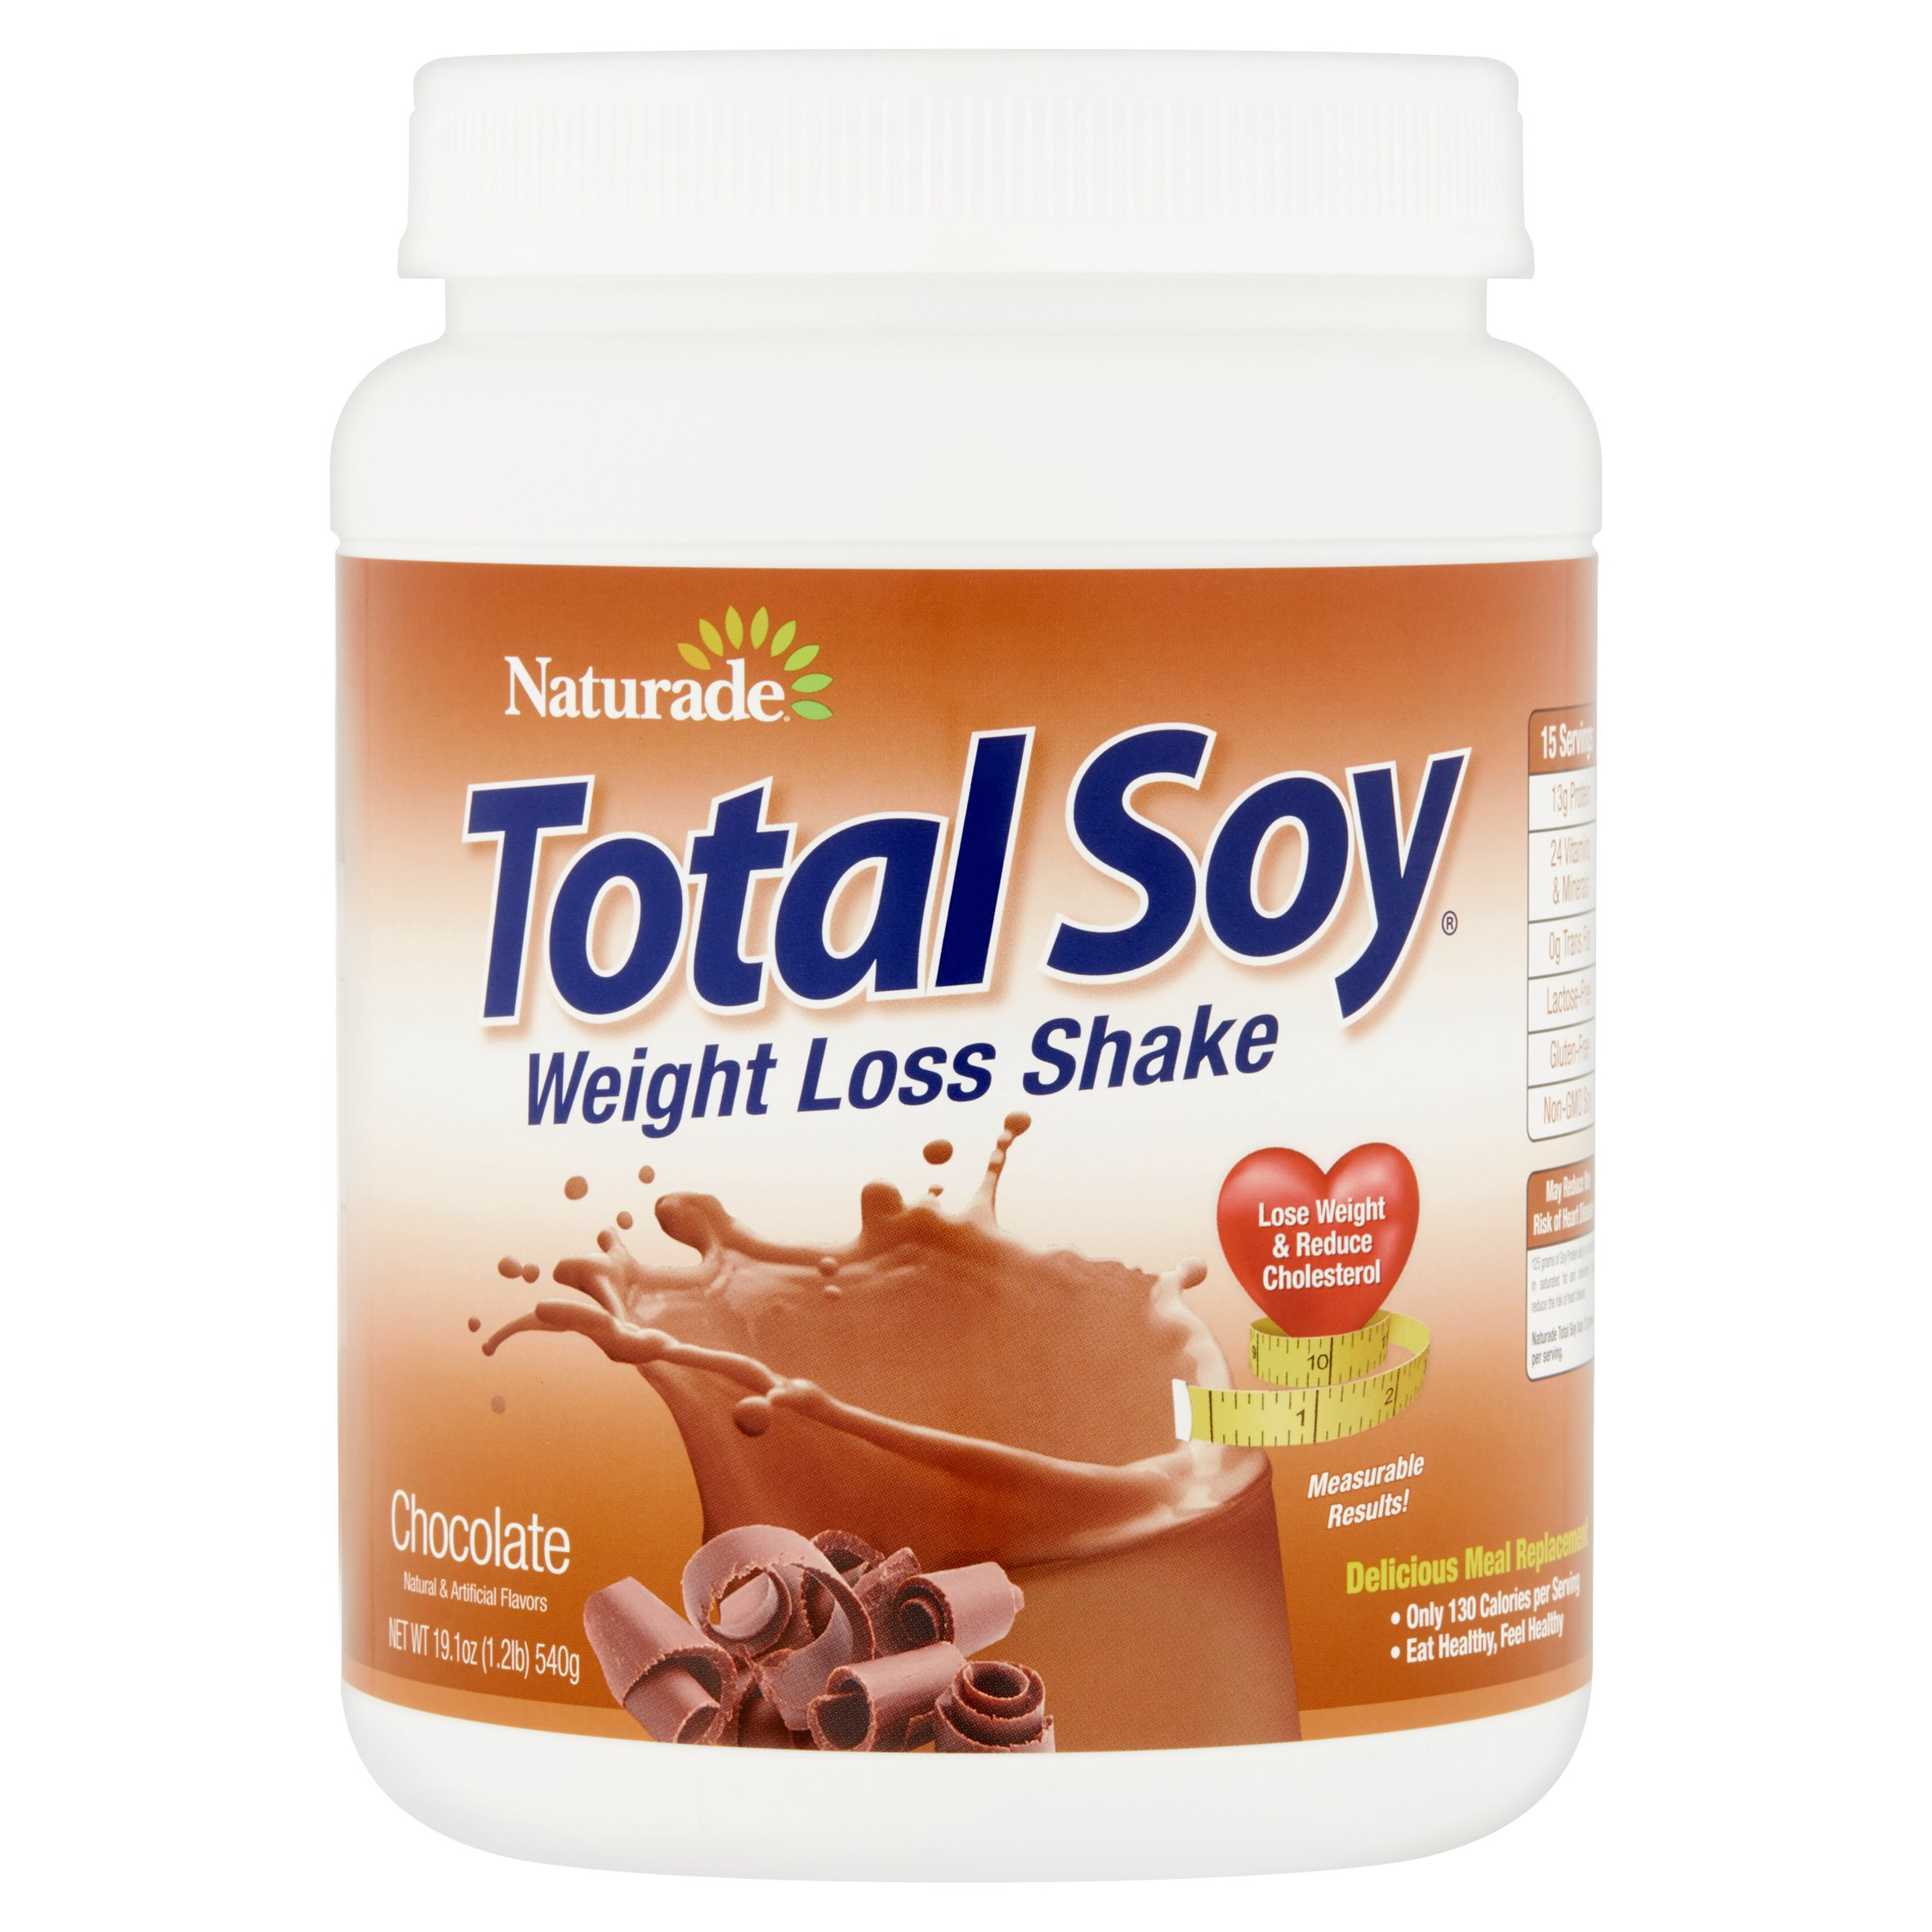 Naturade Total Soy Chocolate Weight Loss Shake, 19.1 oz